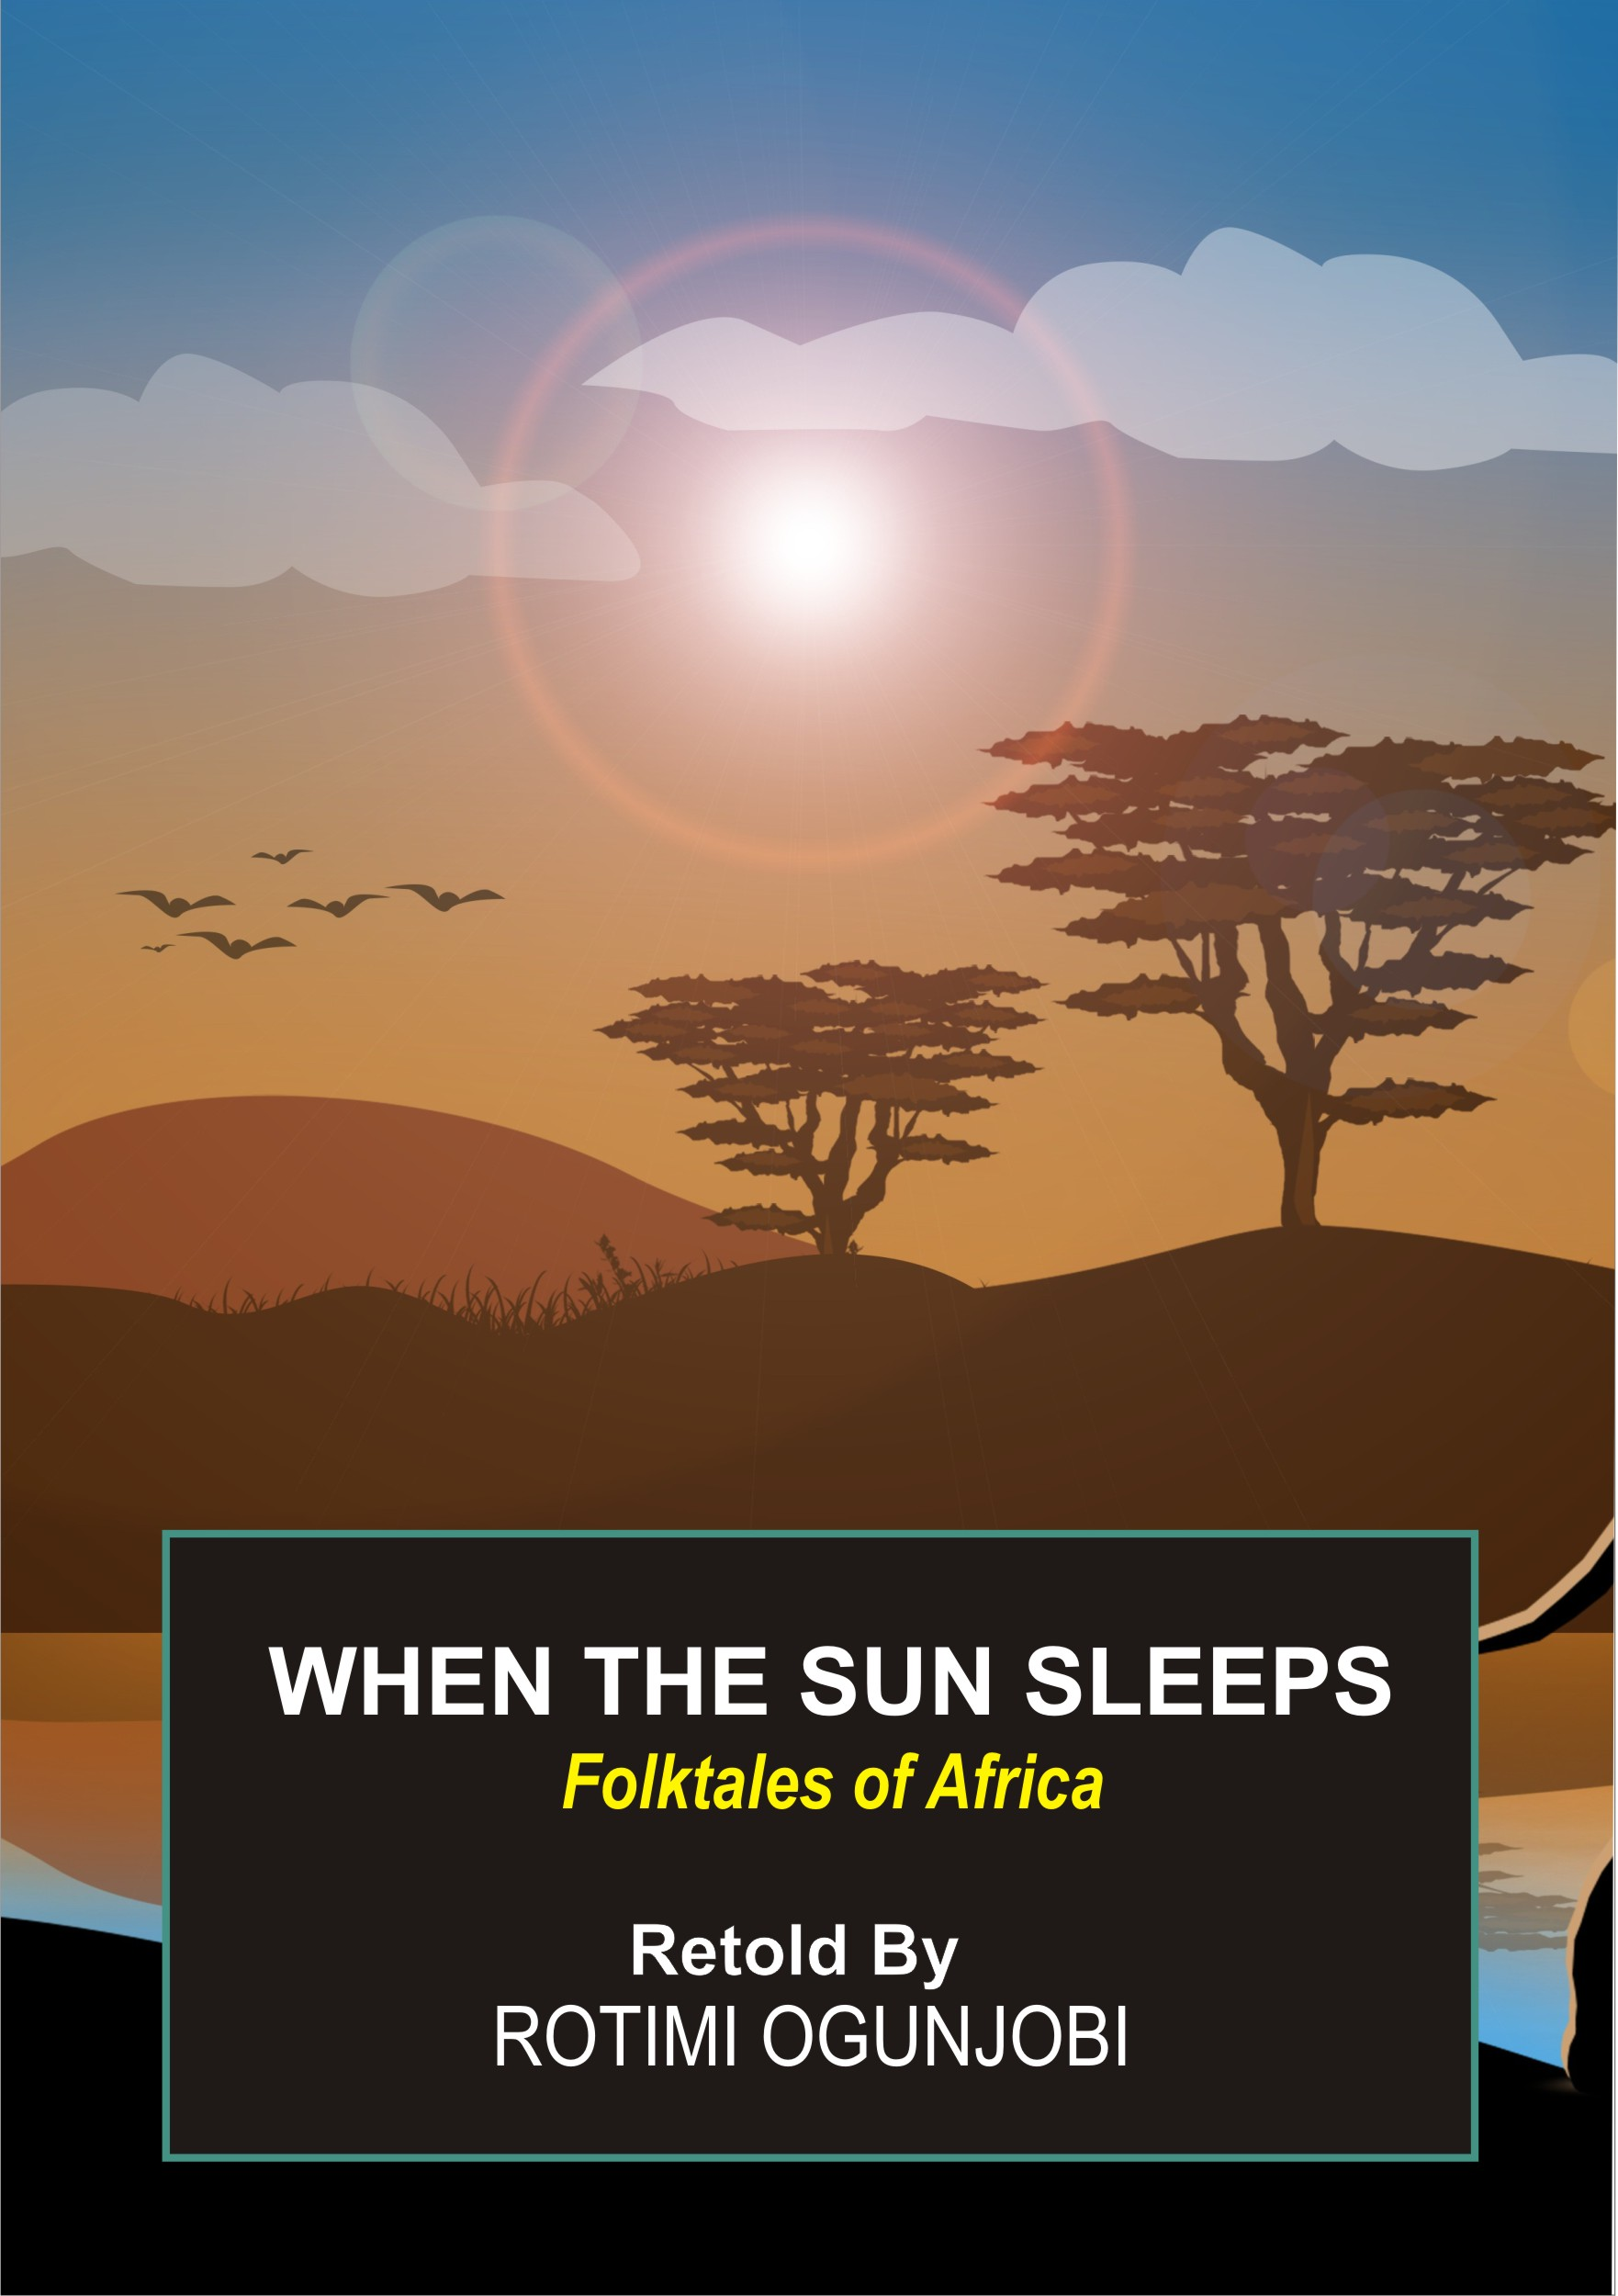 When The Sun Sleeps - folktales from Africa 1